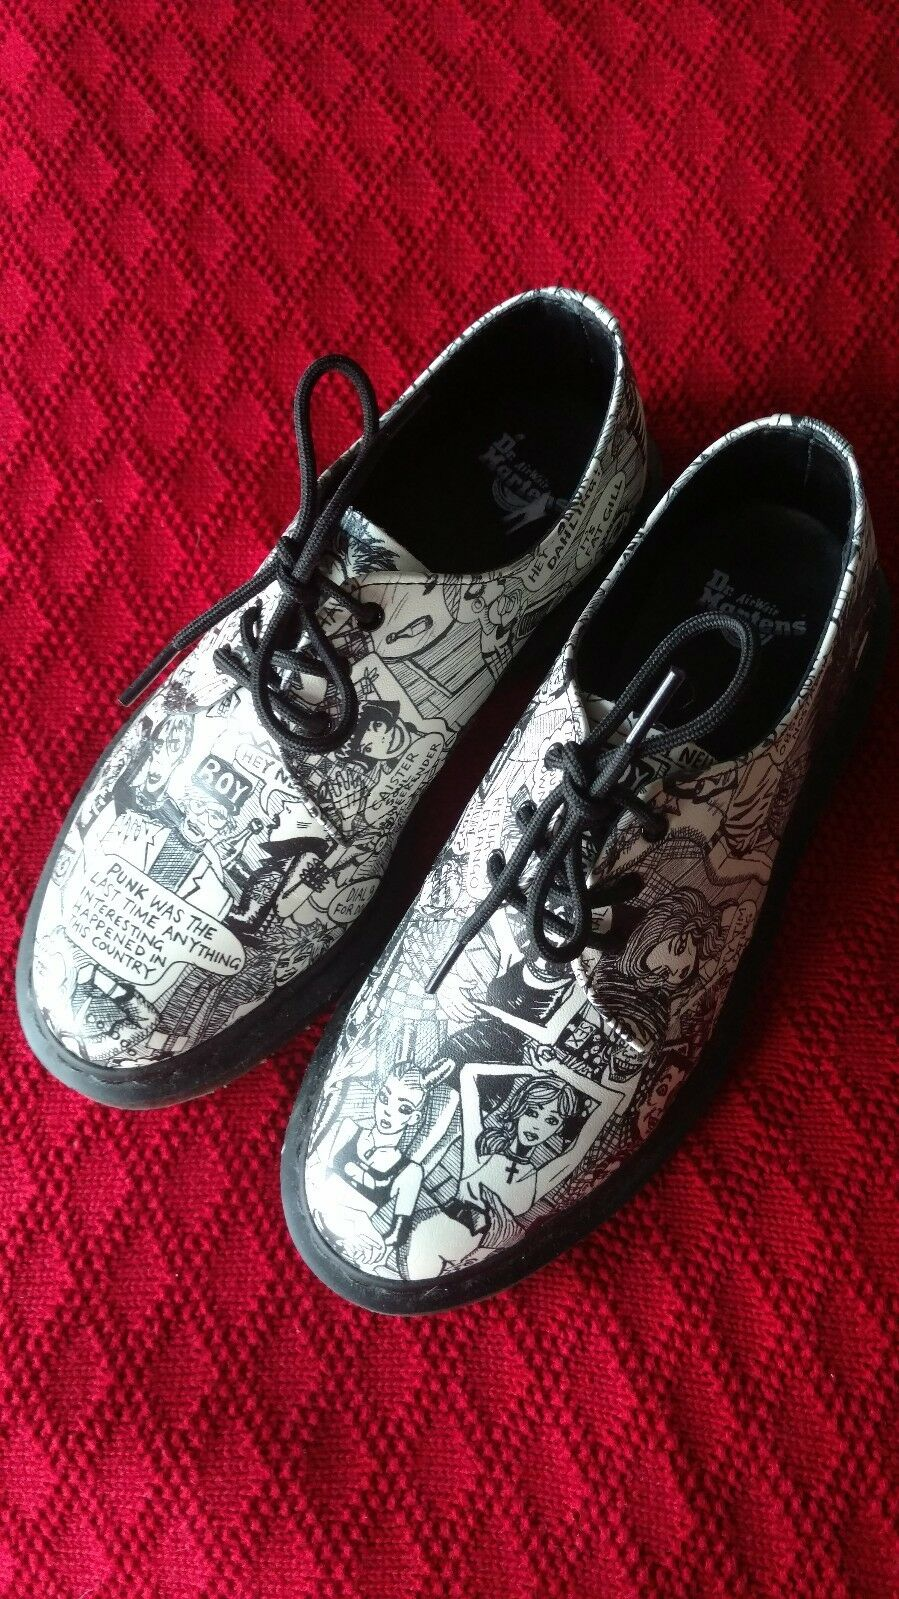 DOC MARTENS   149  1461  PARTY PEOPLE  3 Eye Oxfords Limited Edition SIZE US 7